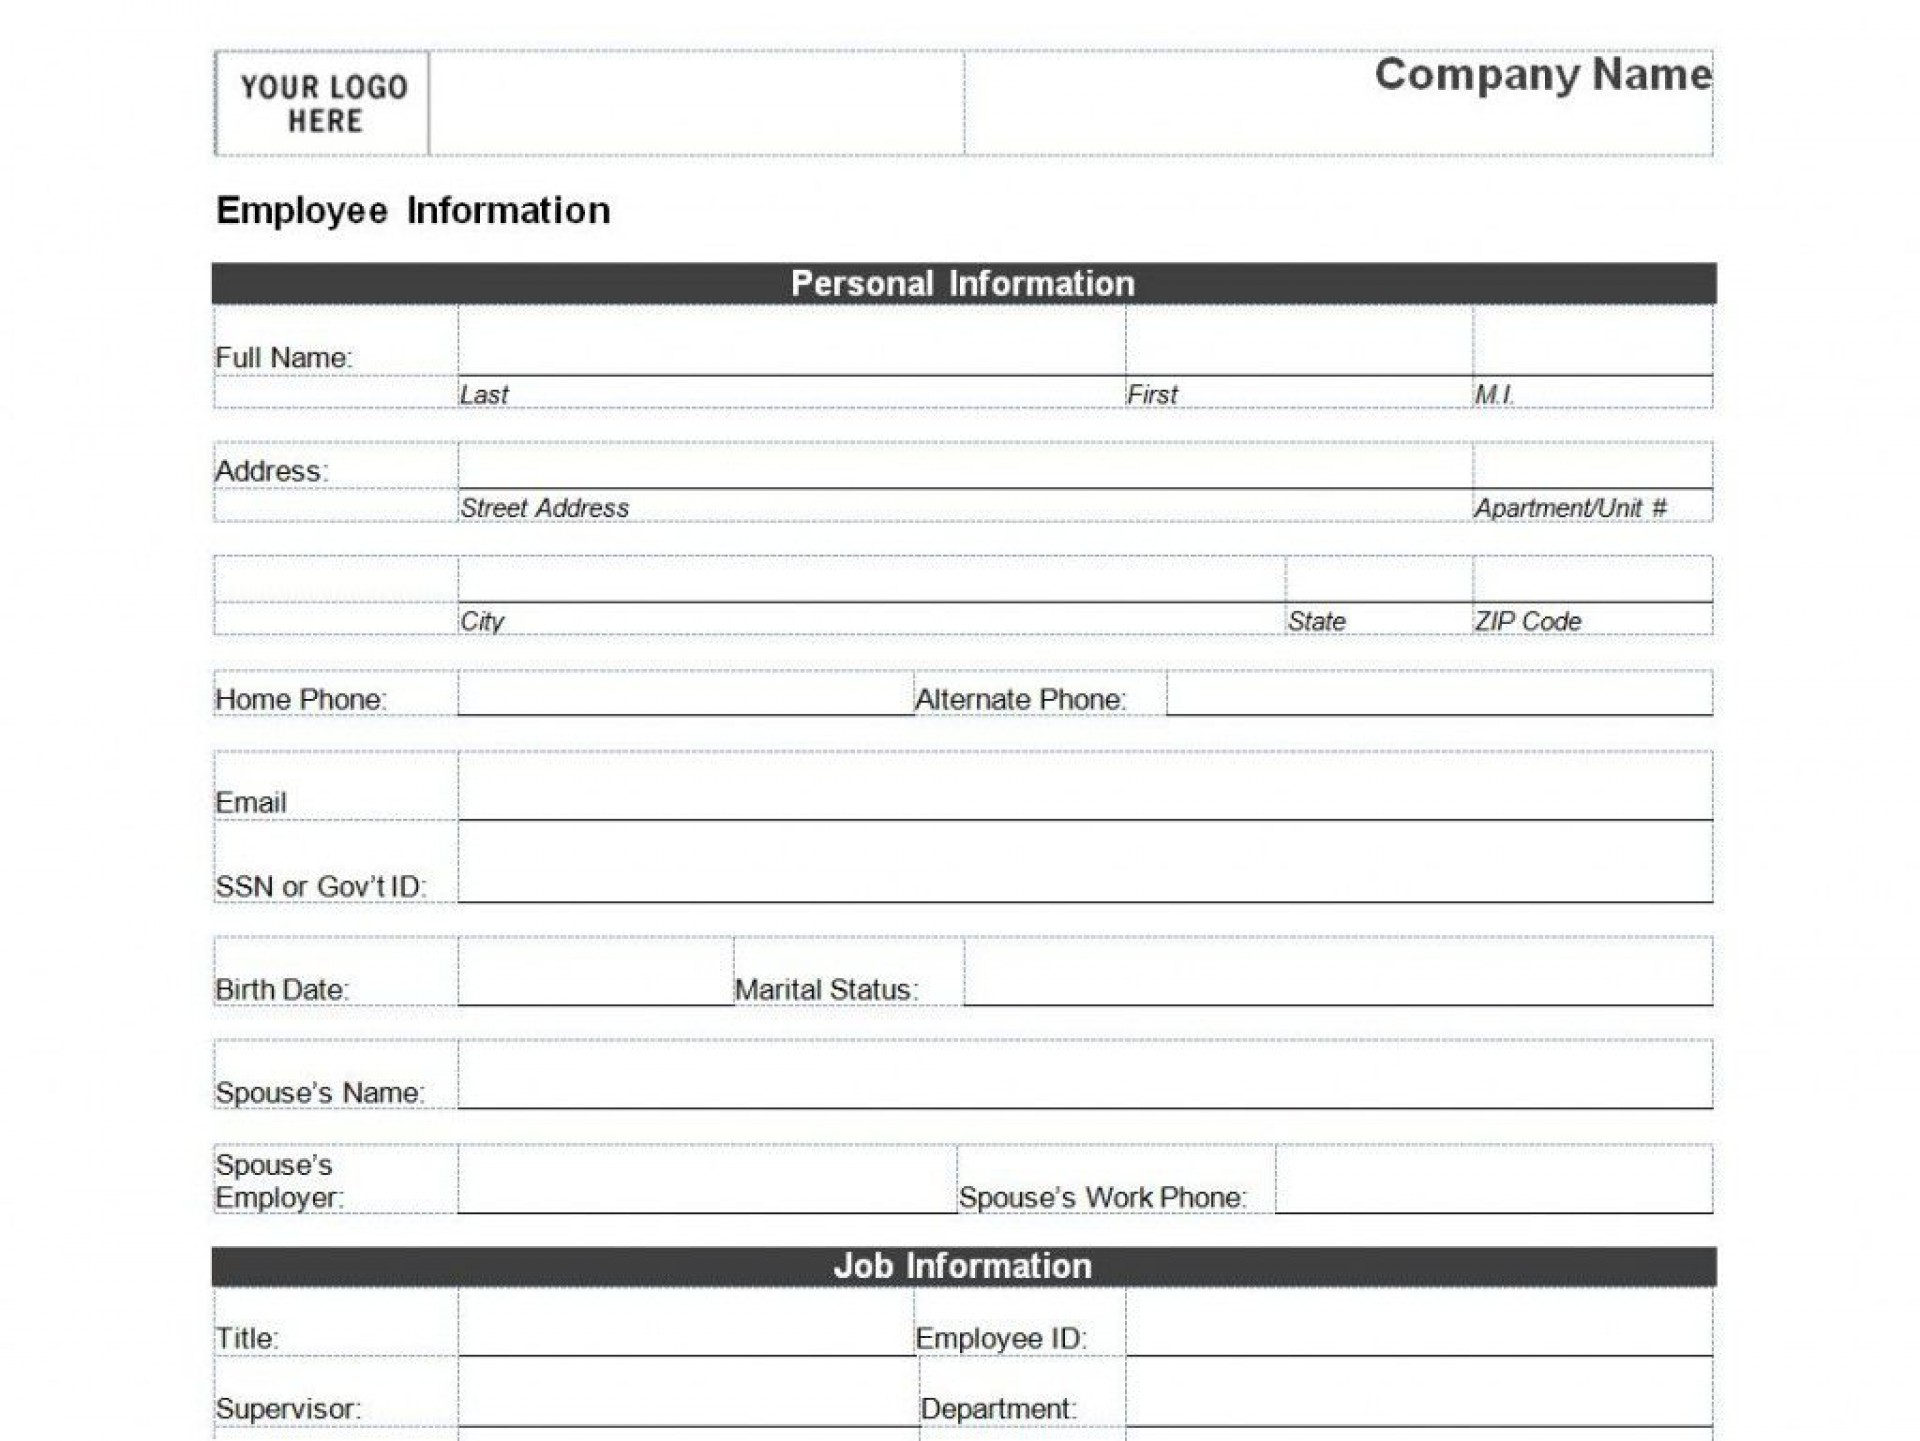 009 Exceptional New Busines Client Information Form Template Photo 1920